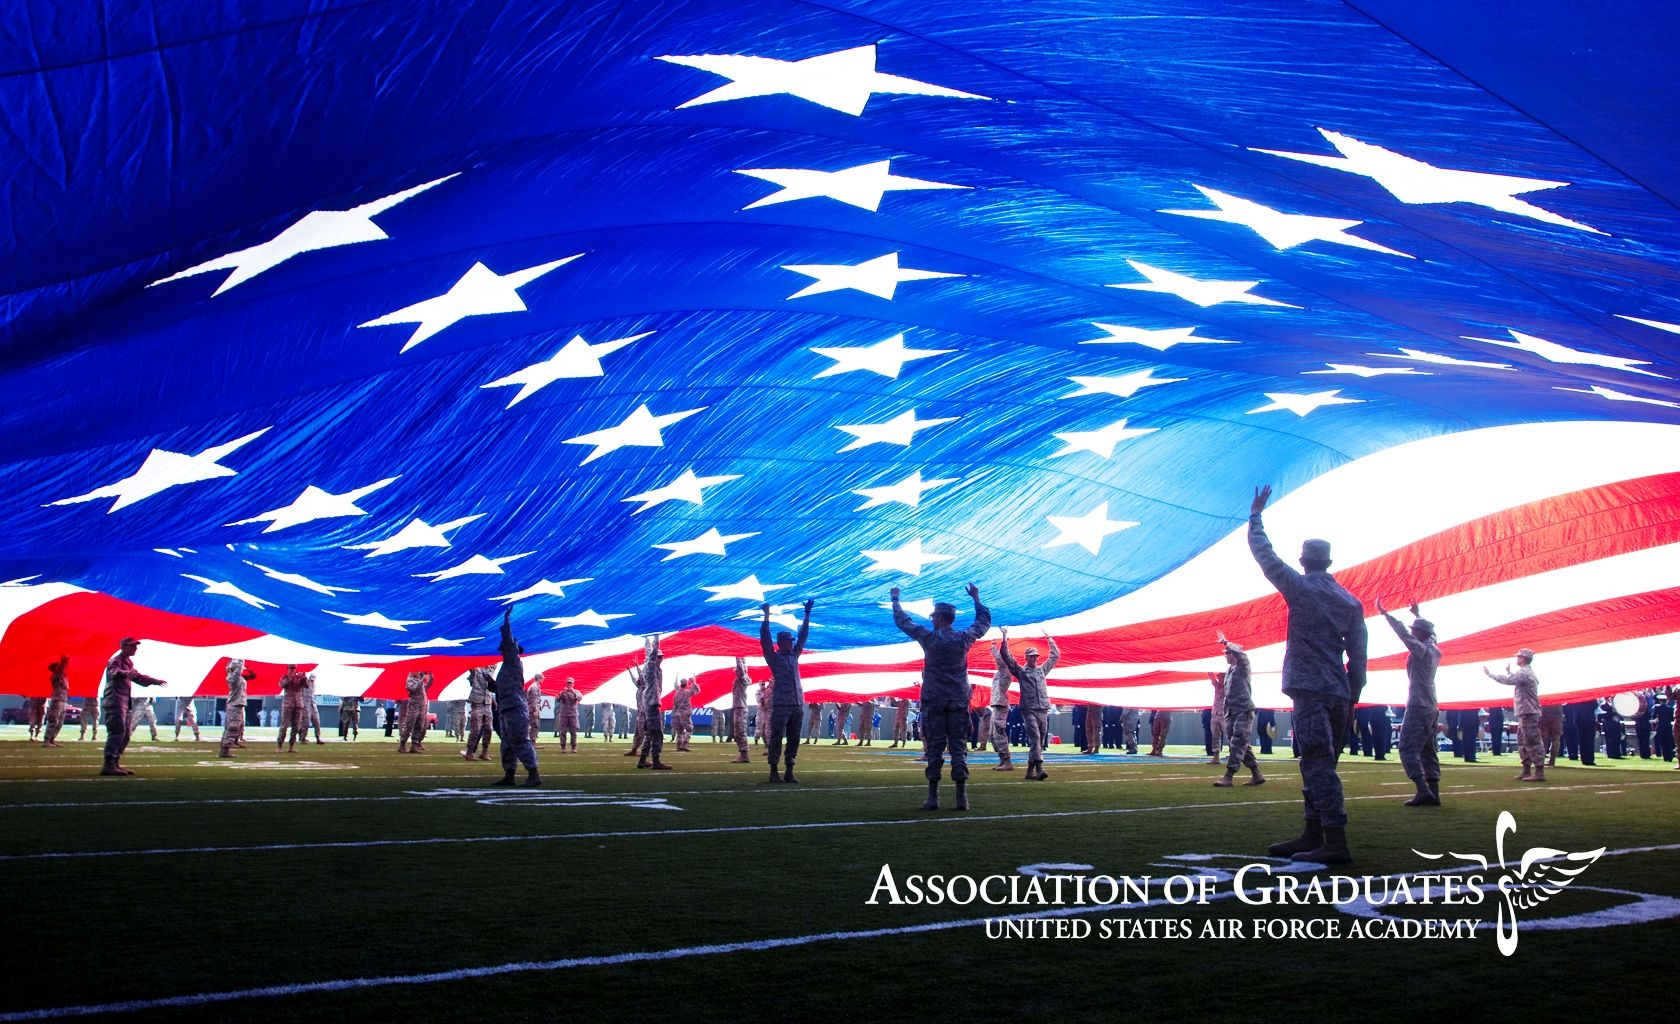 United States Air Force Academy (USAFA) Air force